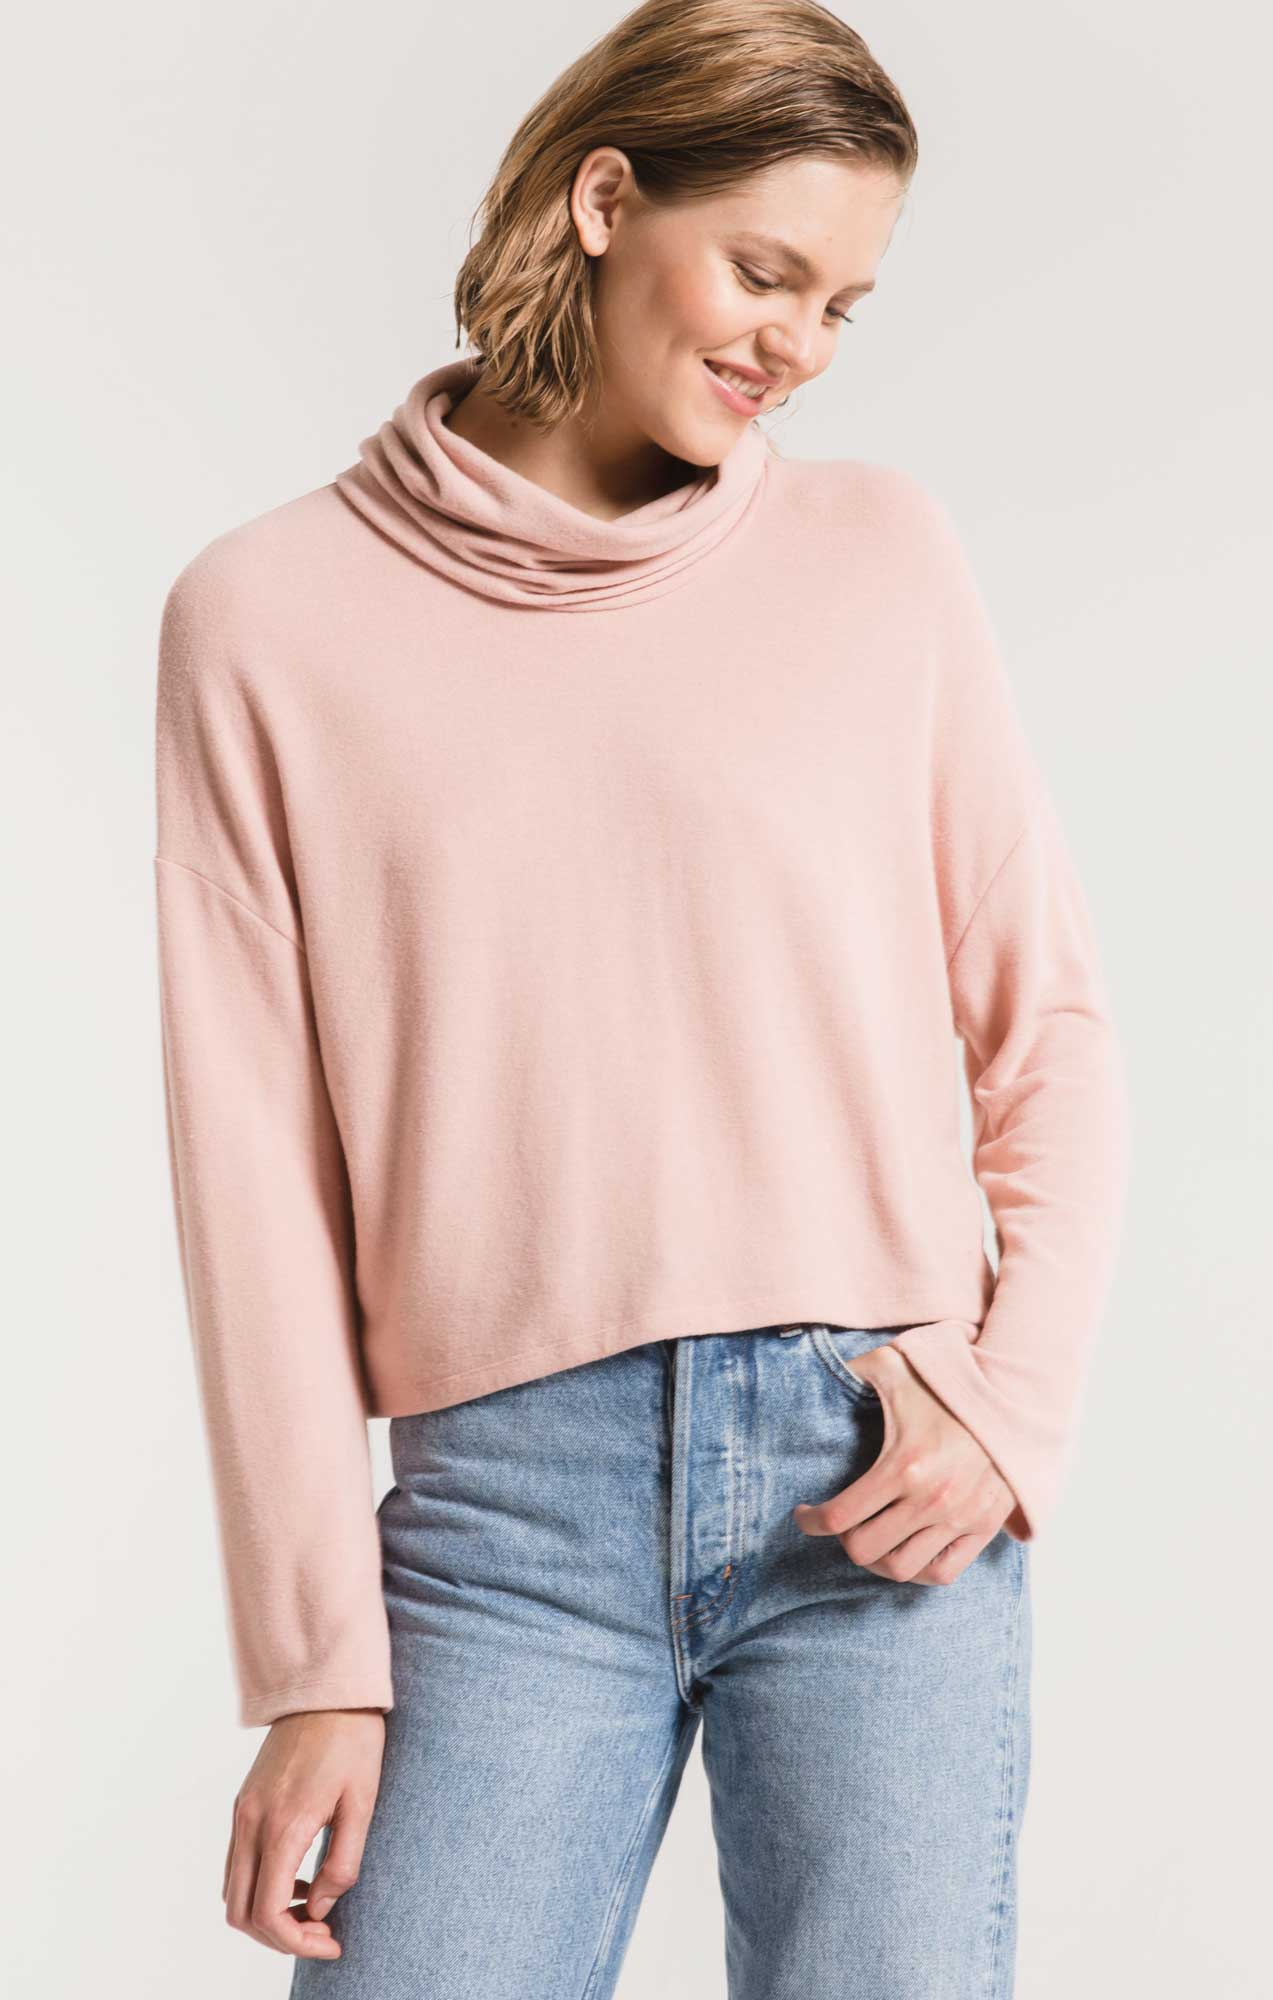 Tops The Soft Spun Skimmer Mock Neck Top Mauve Blush